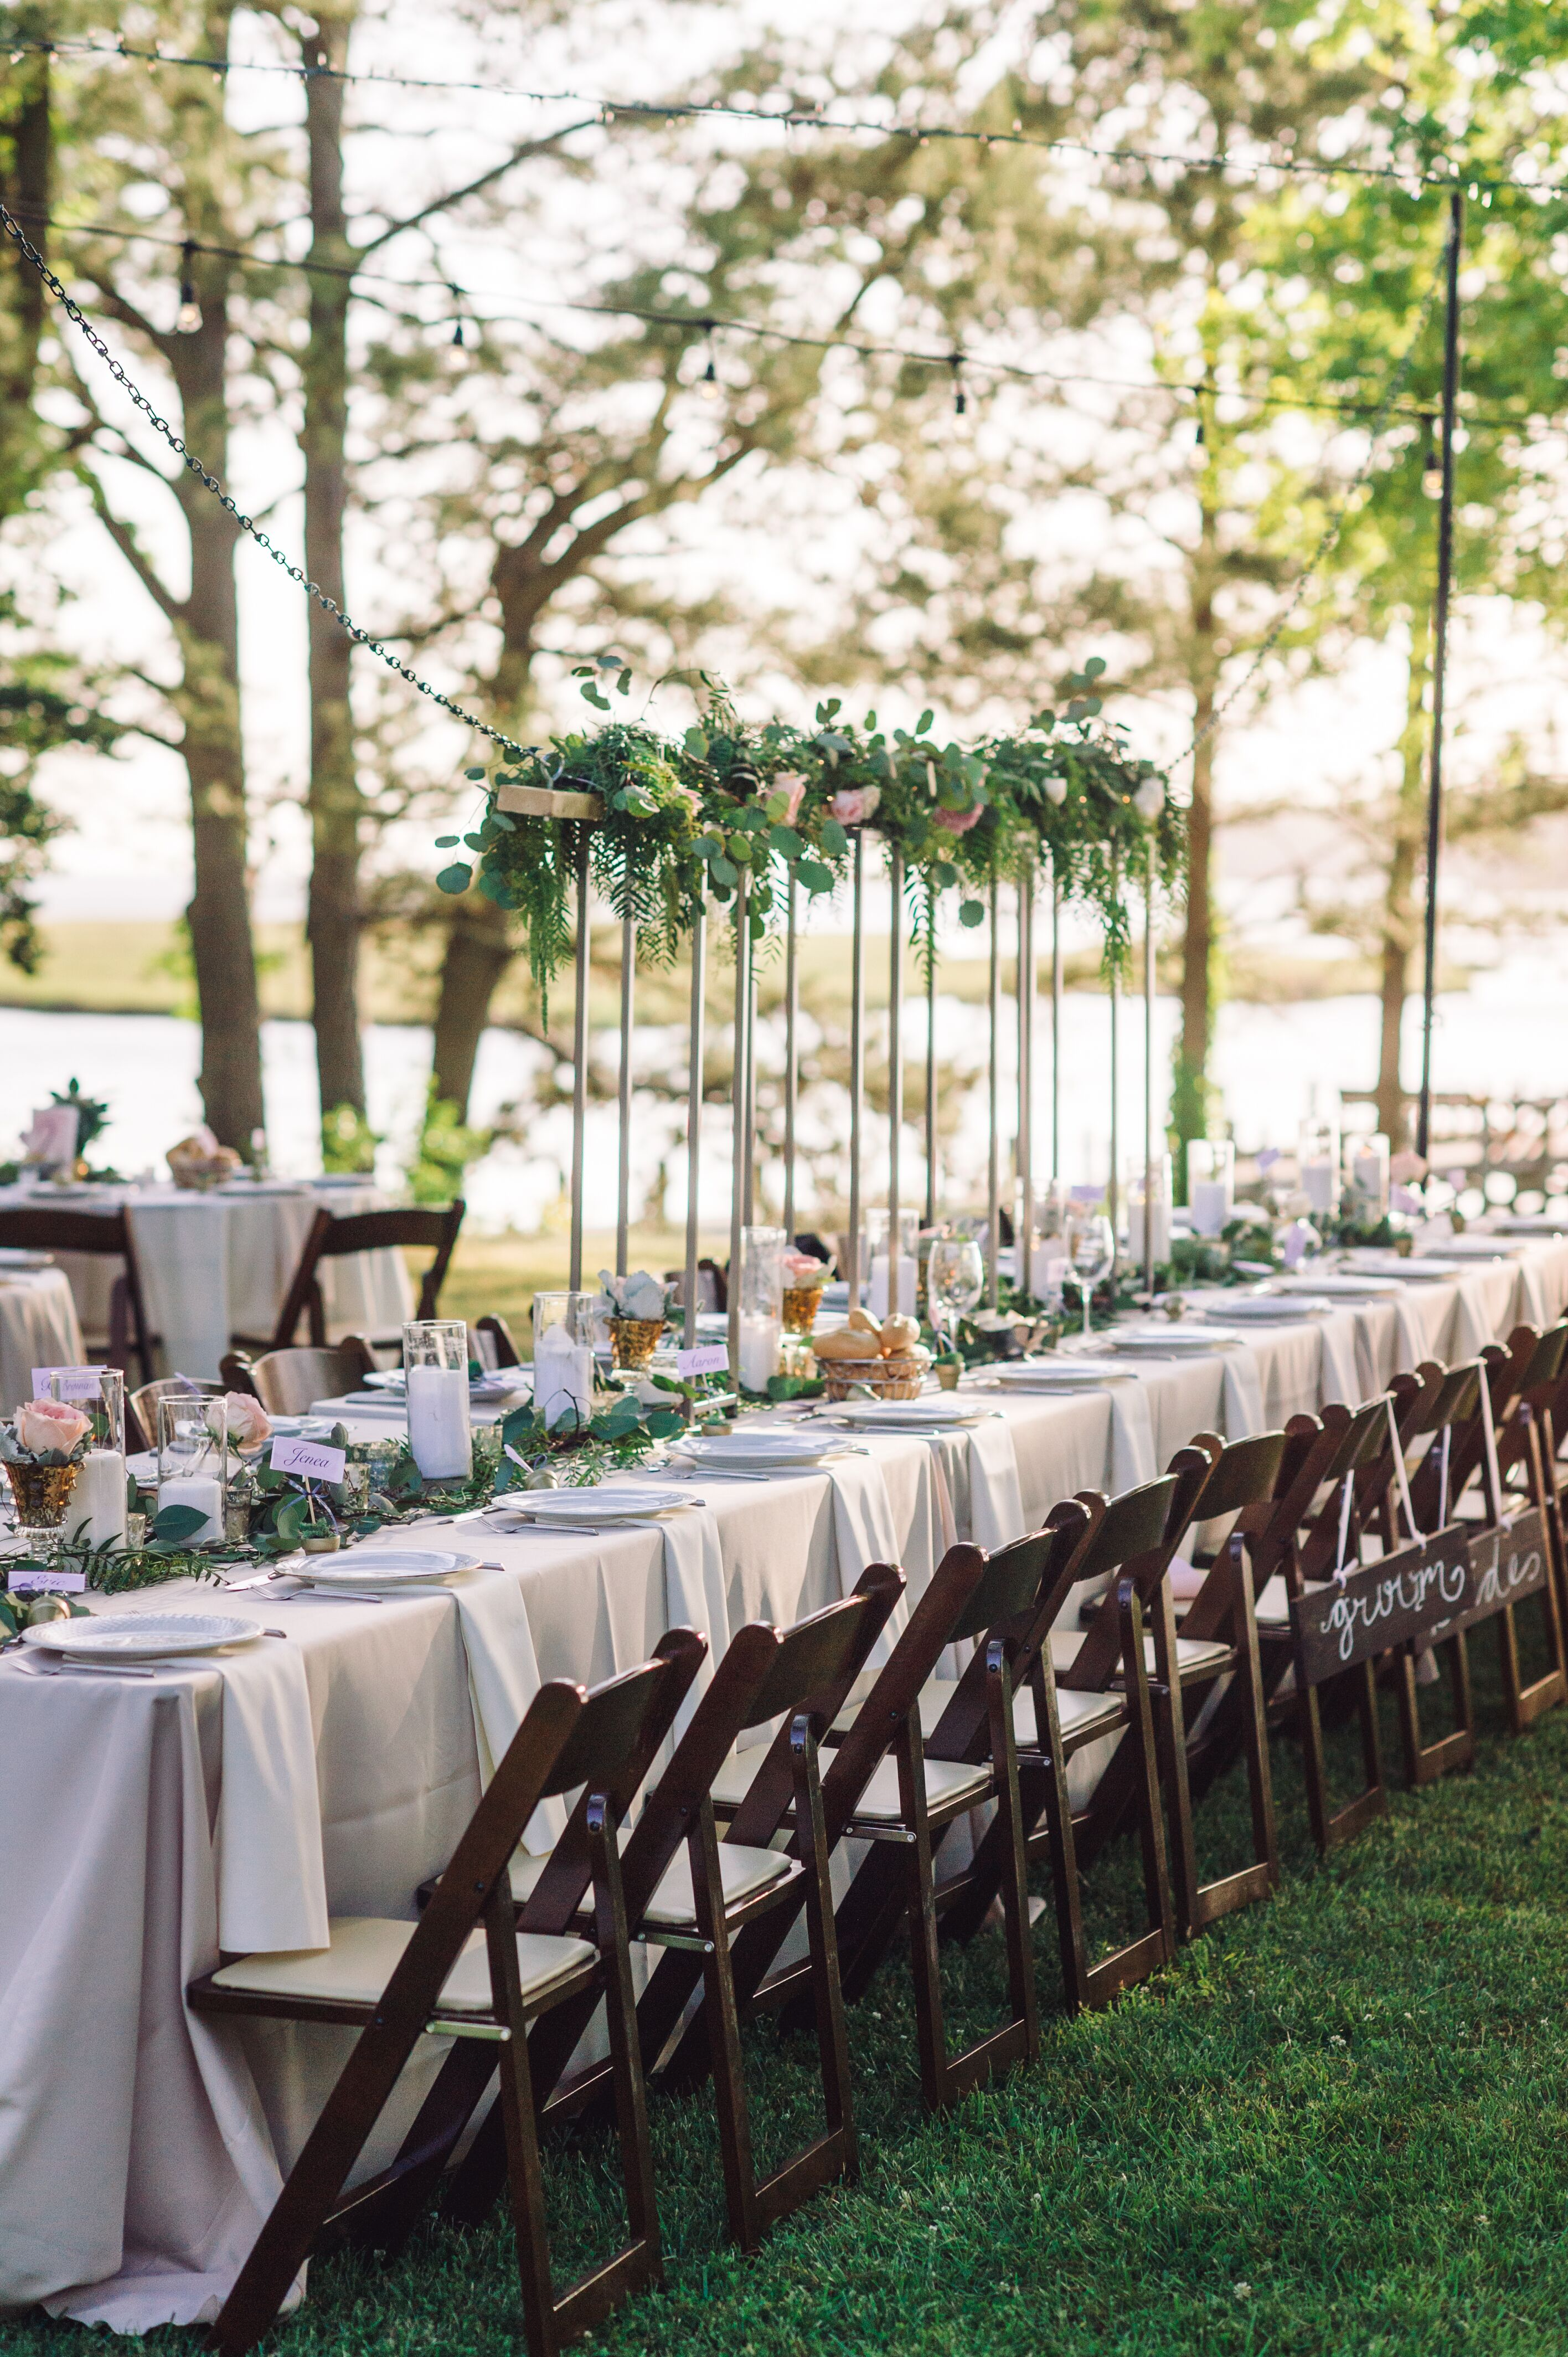 Outdoor Reception with King s Table and Wood Chairs